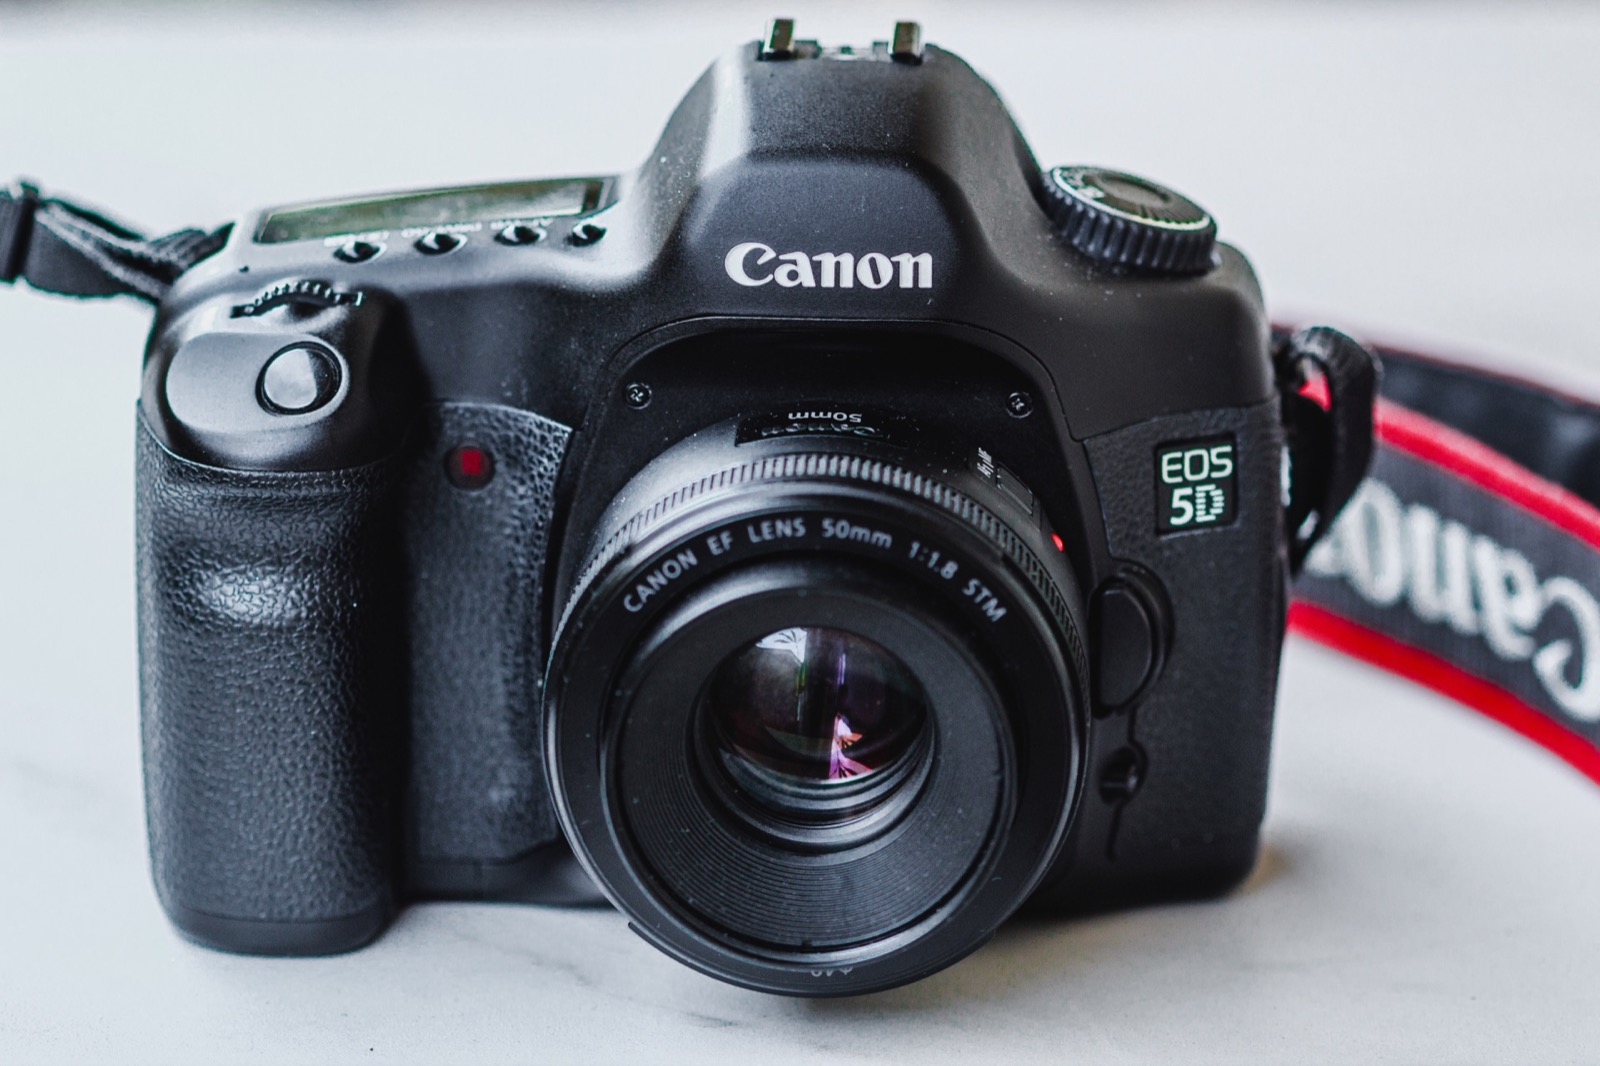 Canon 5D Mark 1 with 50mm lens